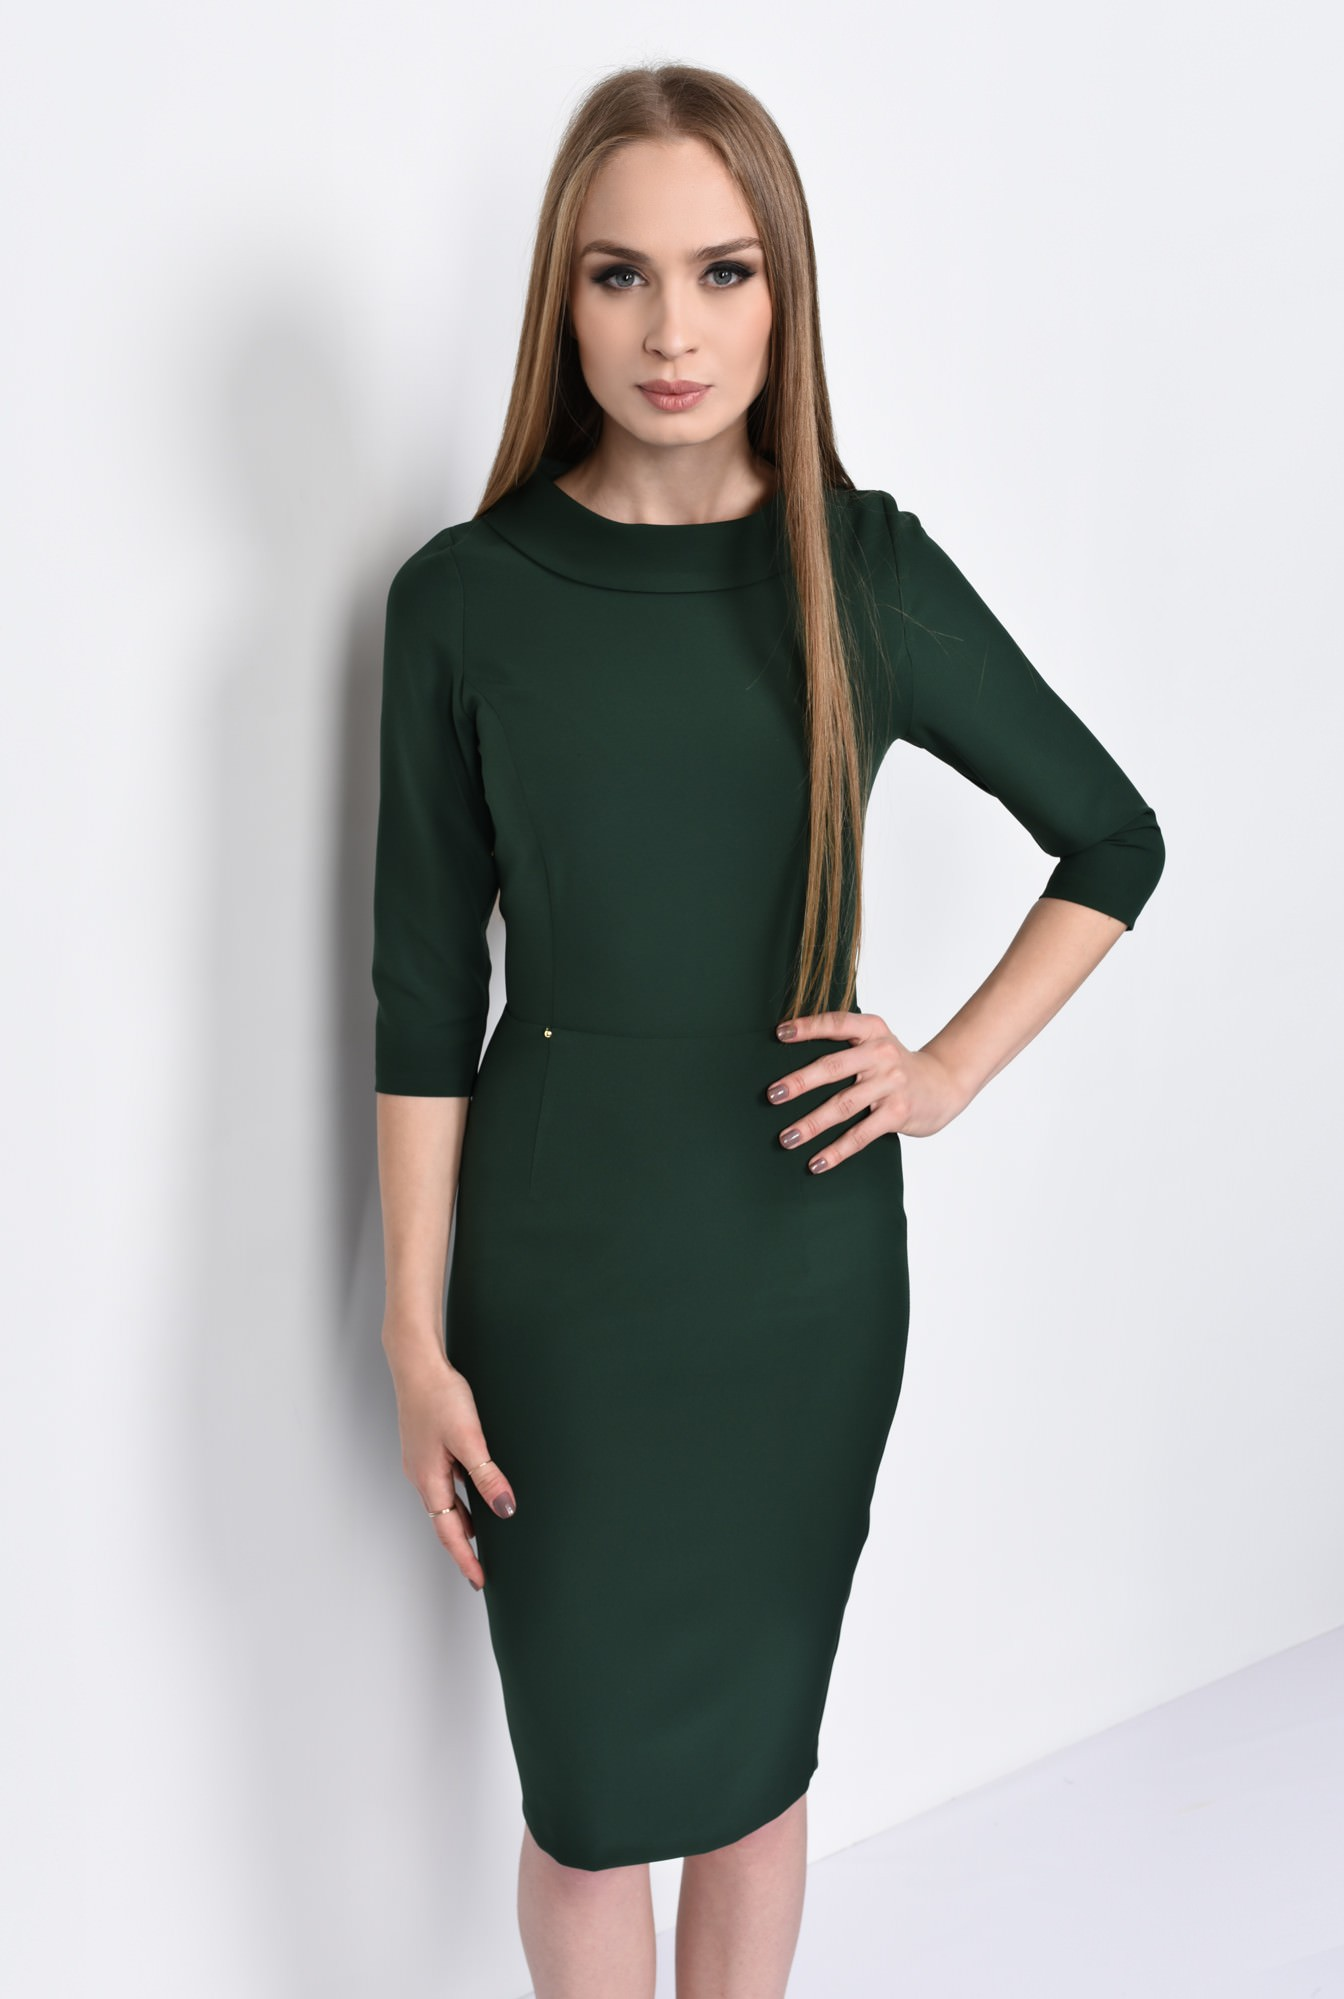 2 - ROCHIE OFFICE CONICA R 167-VERDE